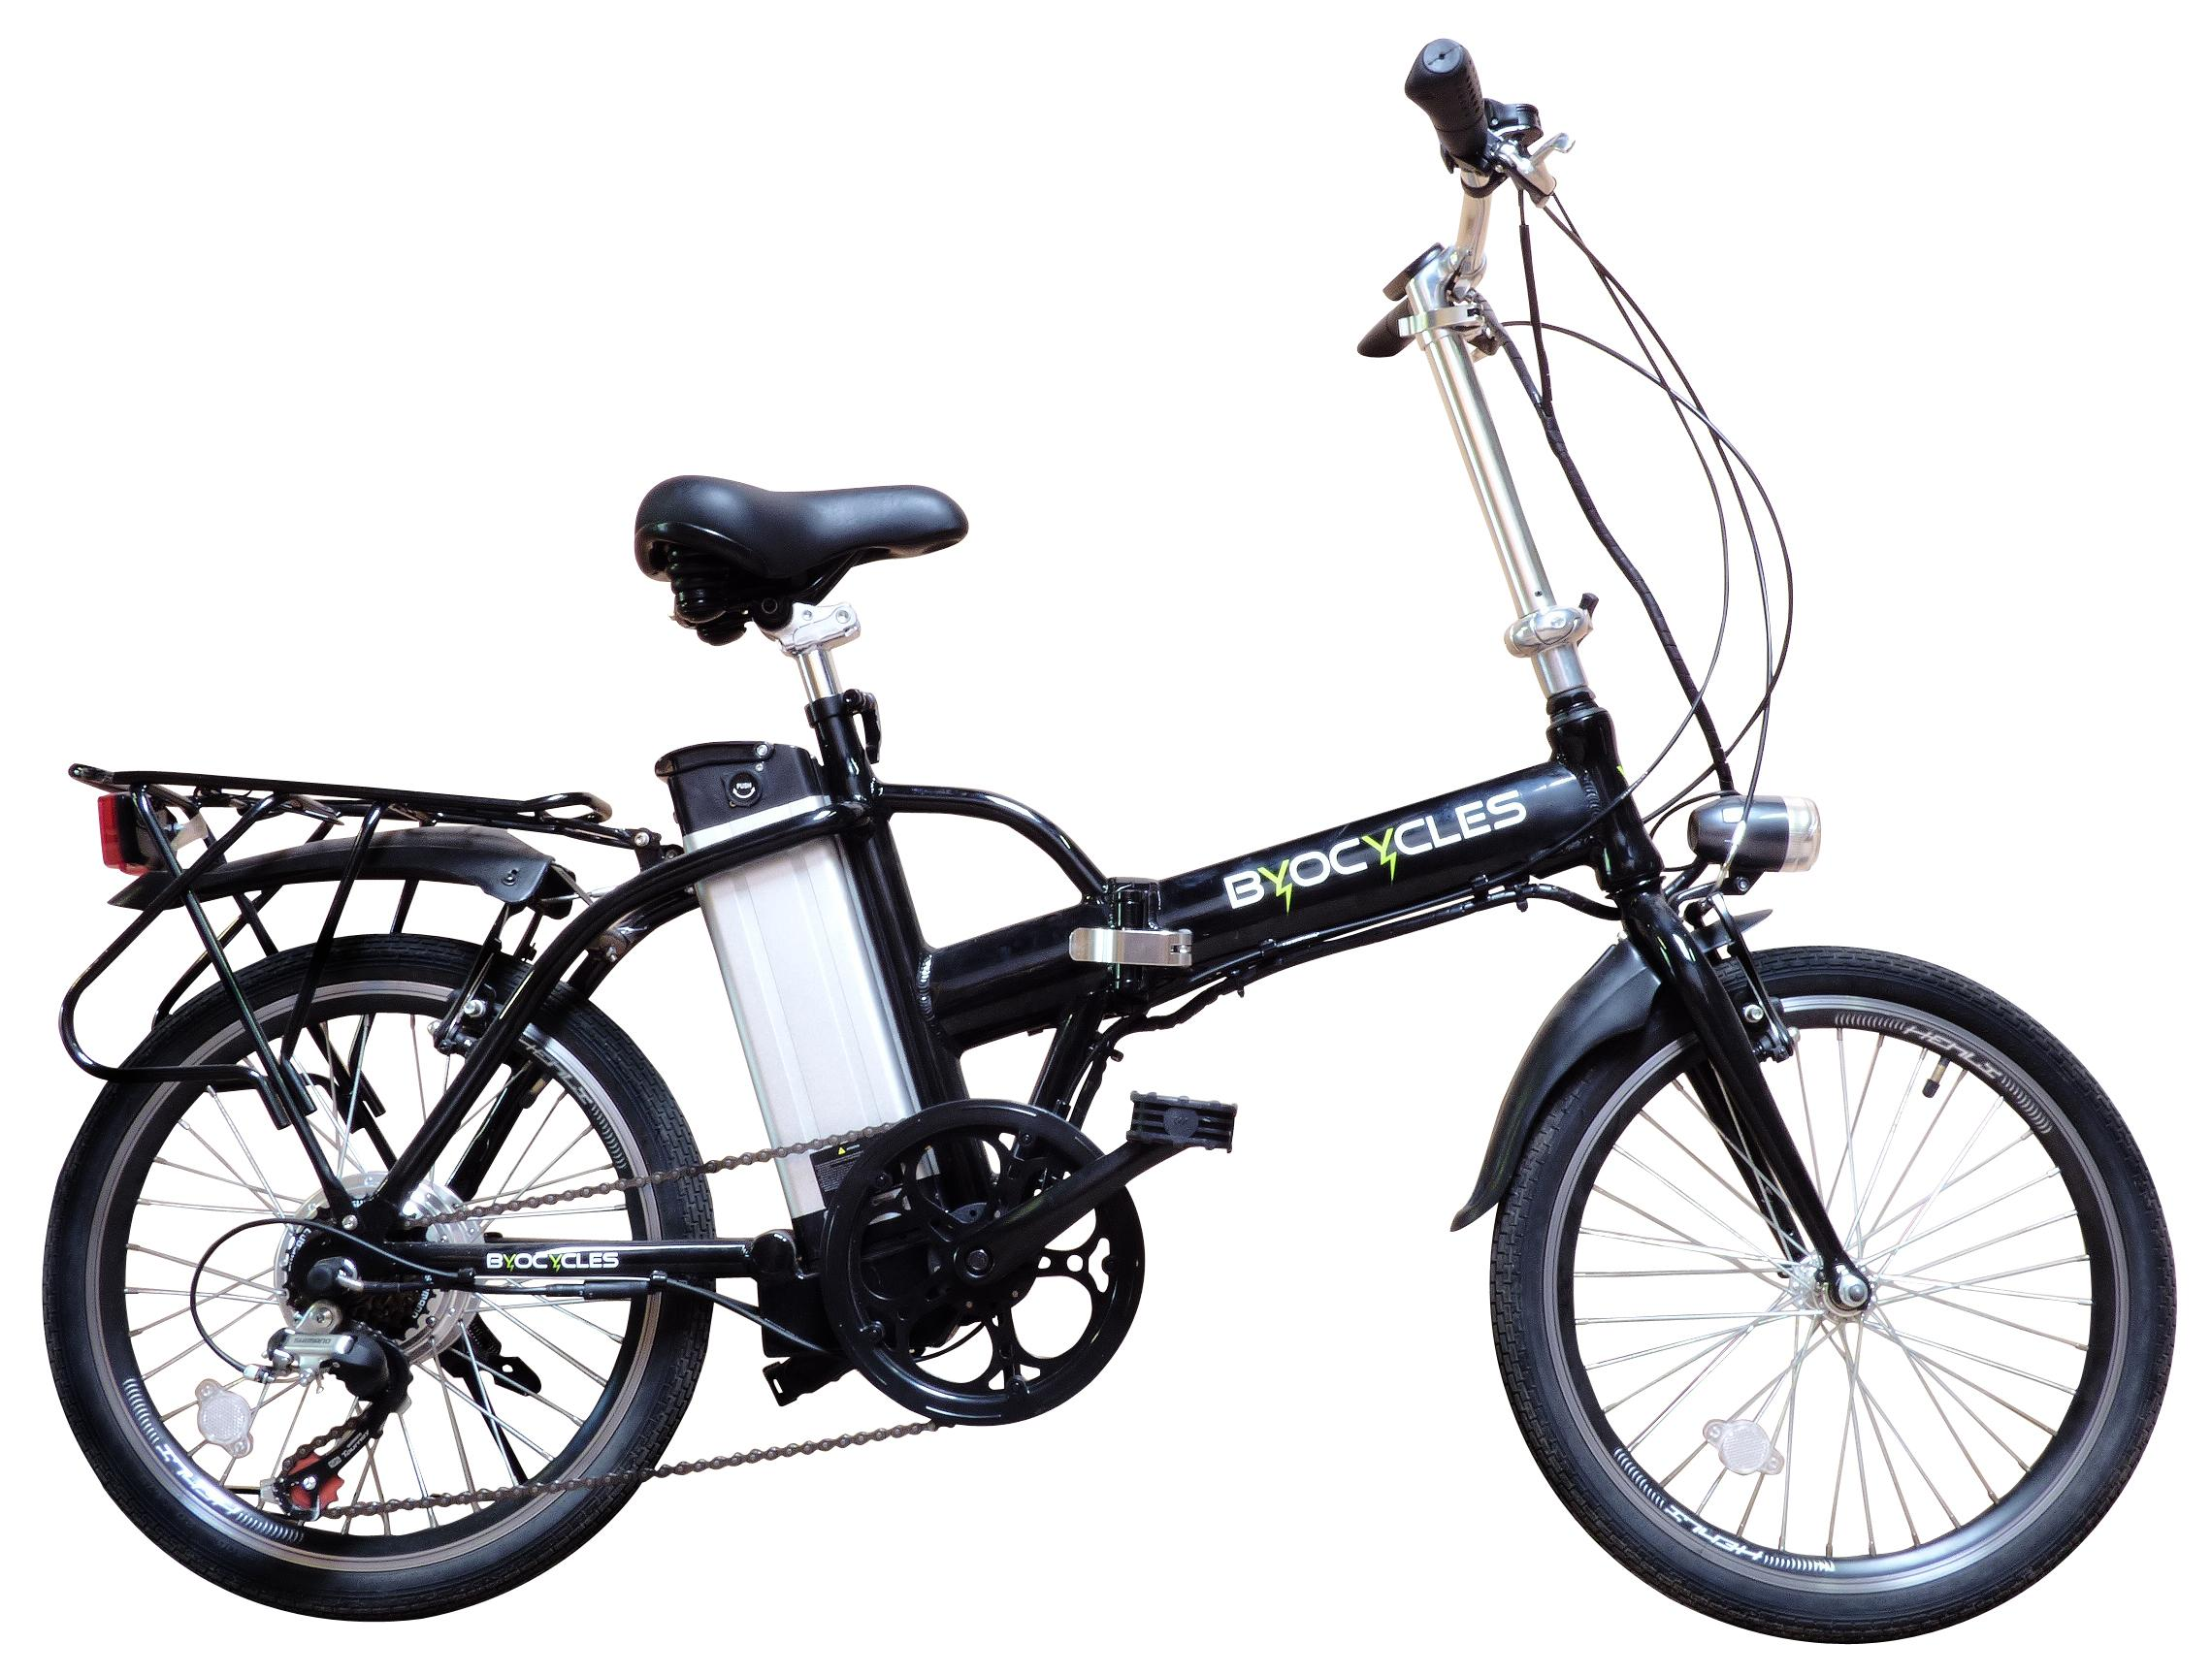 byocycle city speed 6 speed folding electric bike bicycle. Black Bedroom Furniture Sets. Home Design Ideas